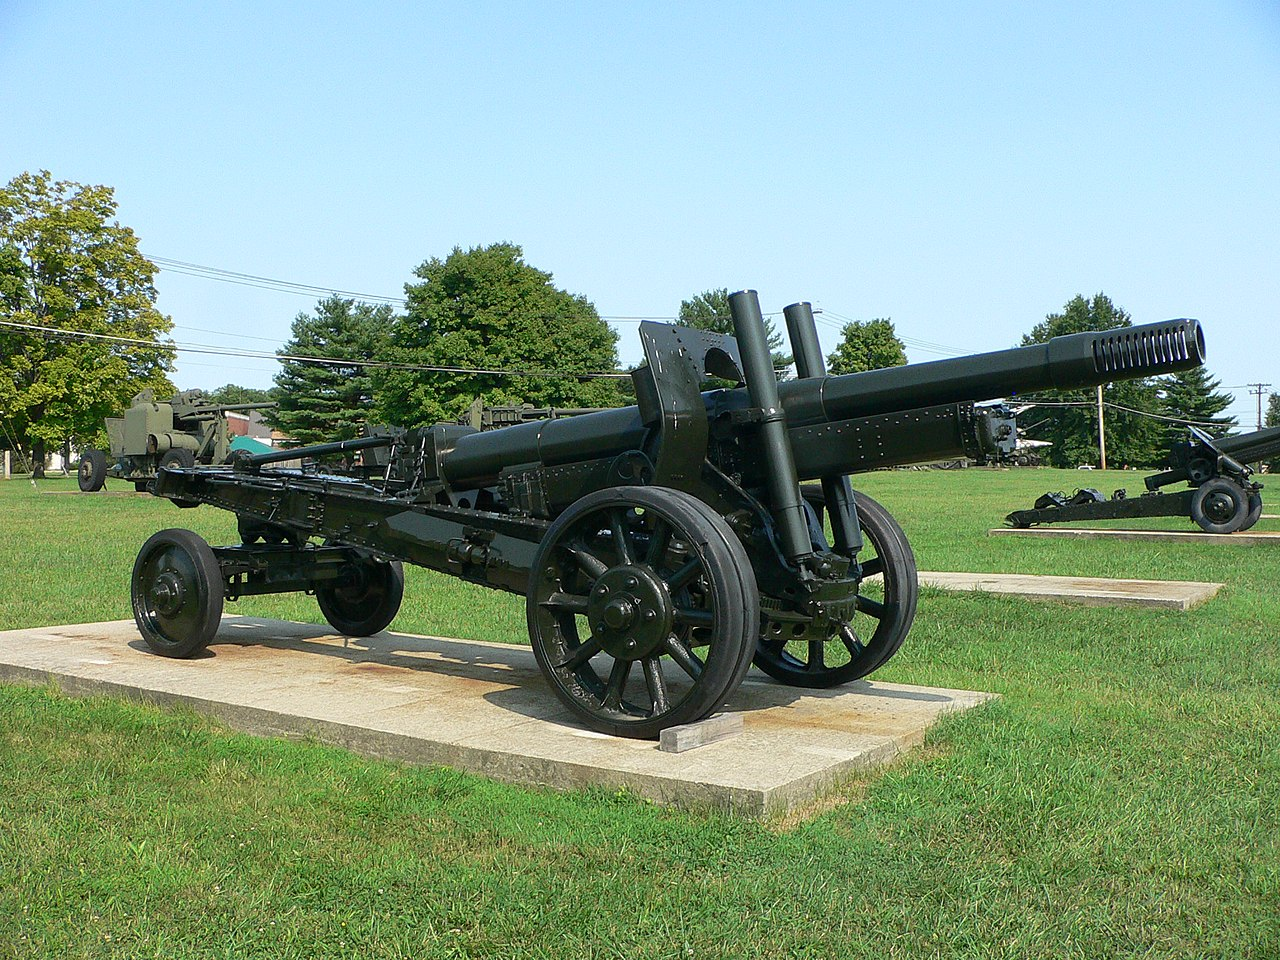 http://upload.wikimedia.org/wikipedia/commons/thumb/9/9f/152_mm_howitzer-gun_M1937_(ML-20)_1.jpg/1280px-152_mm_howitzer-gun_M1937_(ML-20)_1.jpg